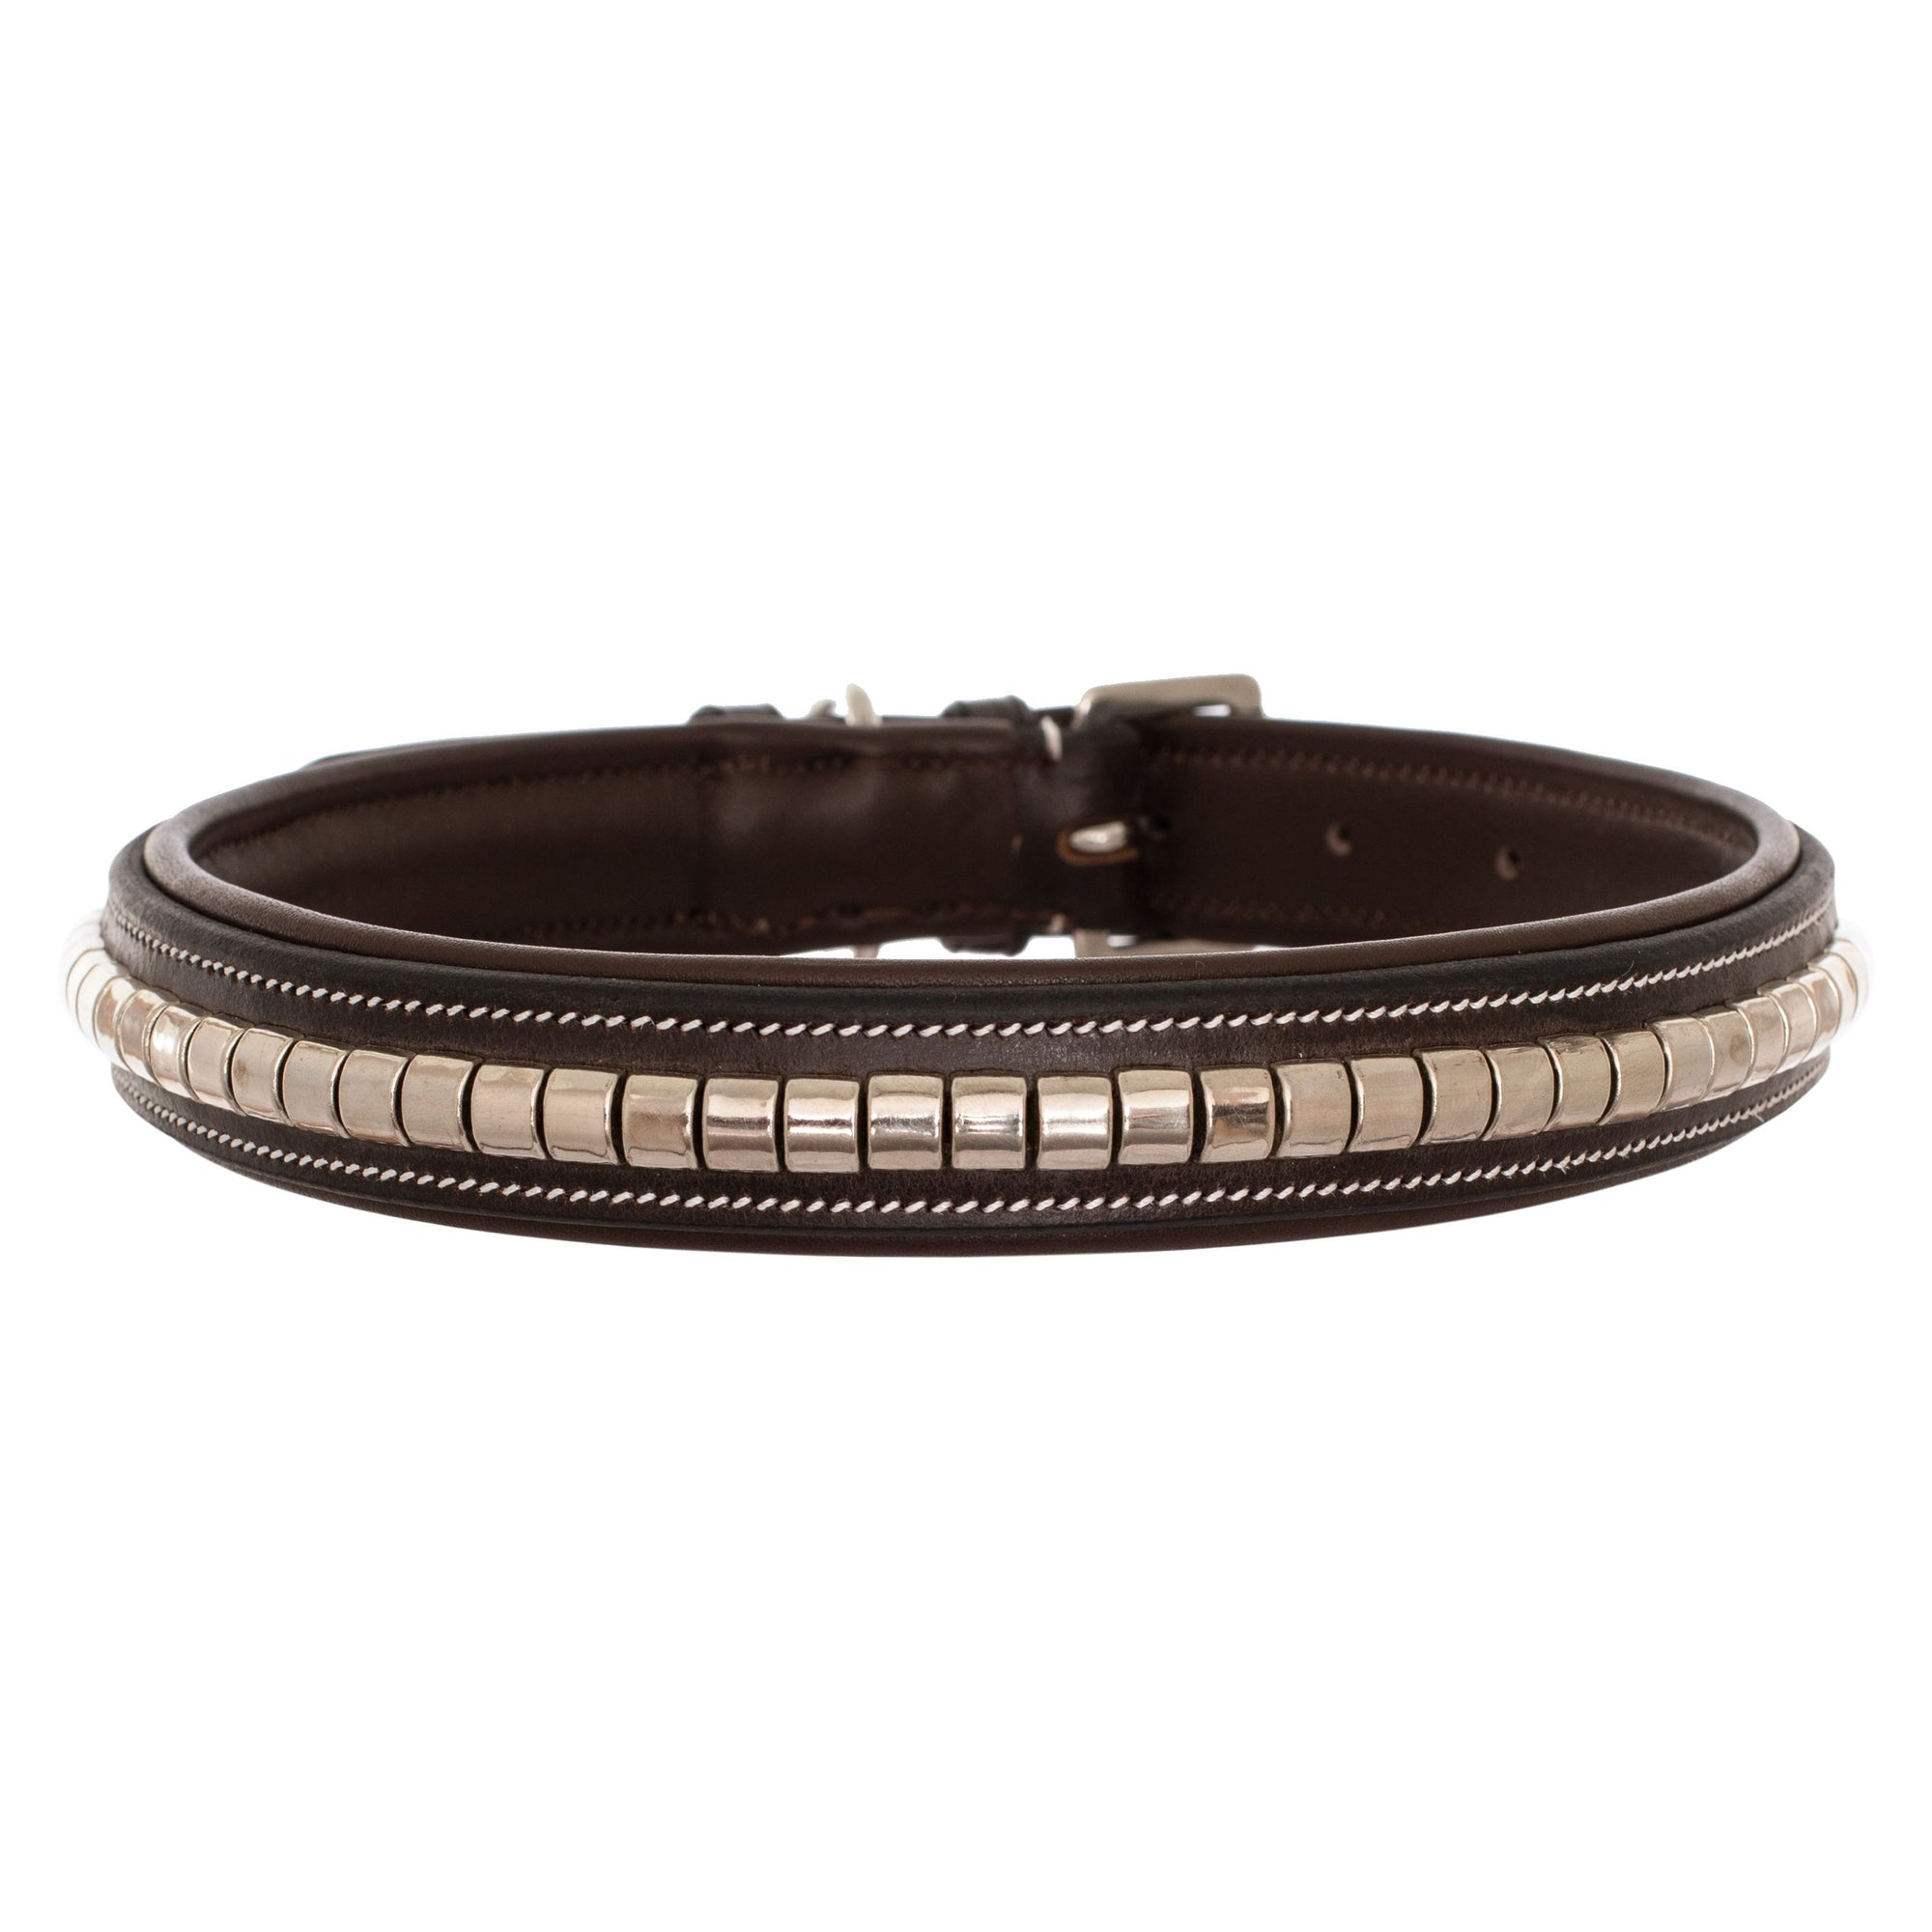 ExionPro Silver Clincher Padded Leather Dog Collar - Brown Padding-Bridles & Reins